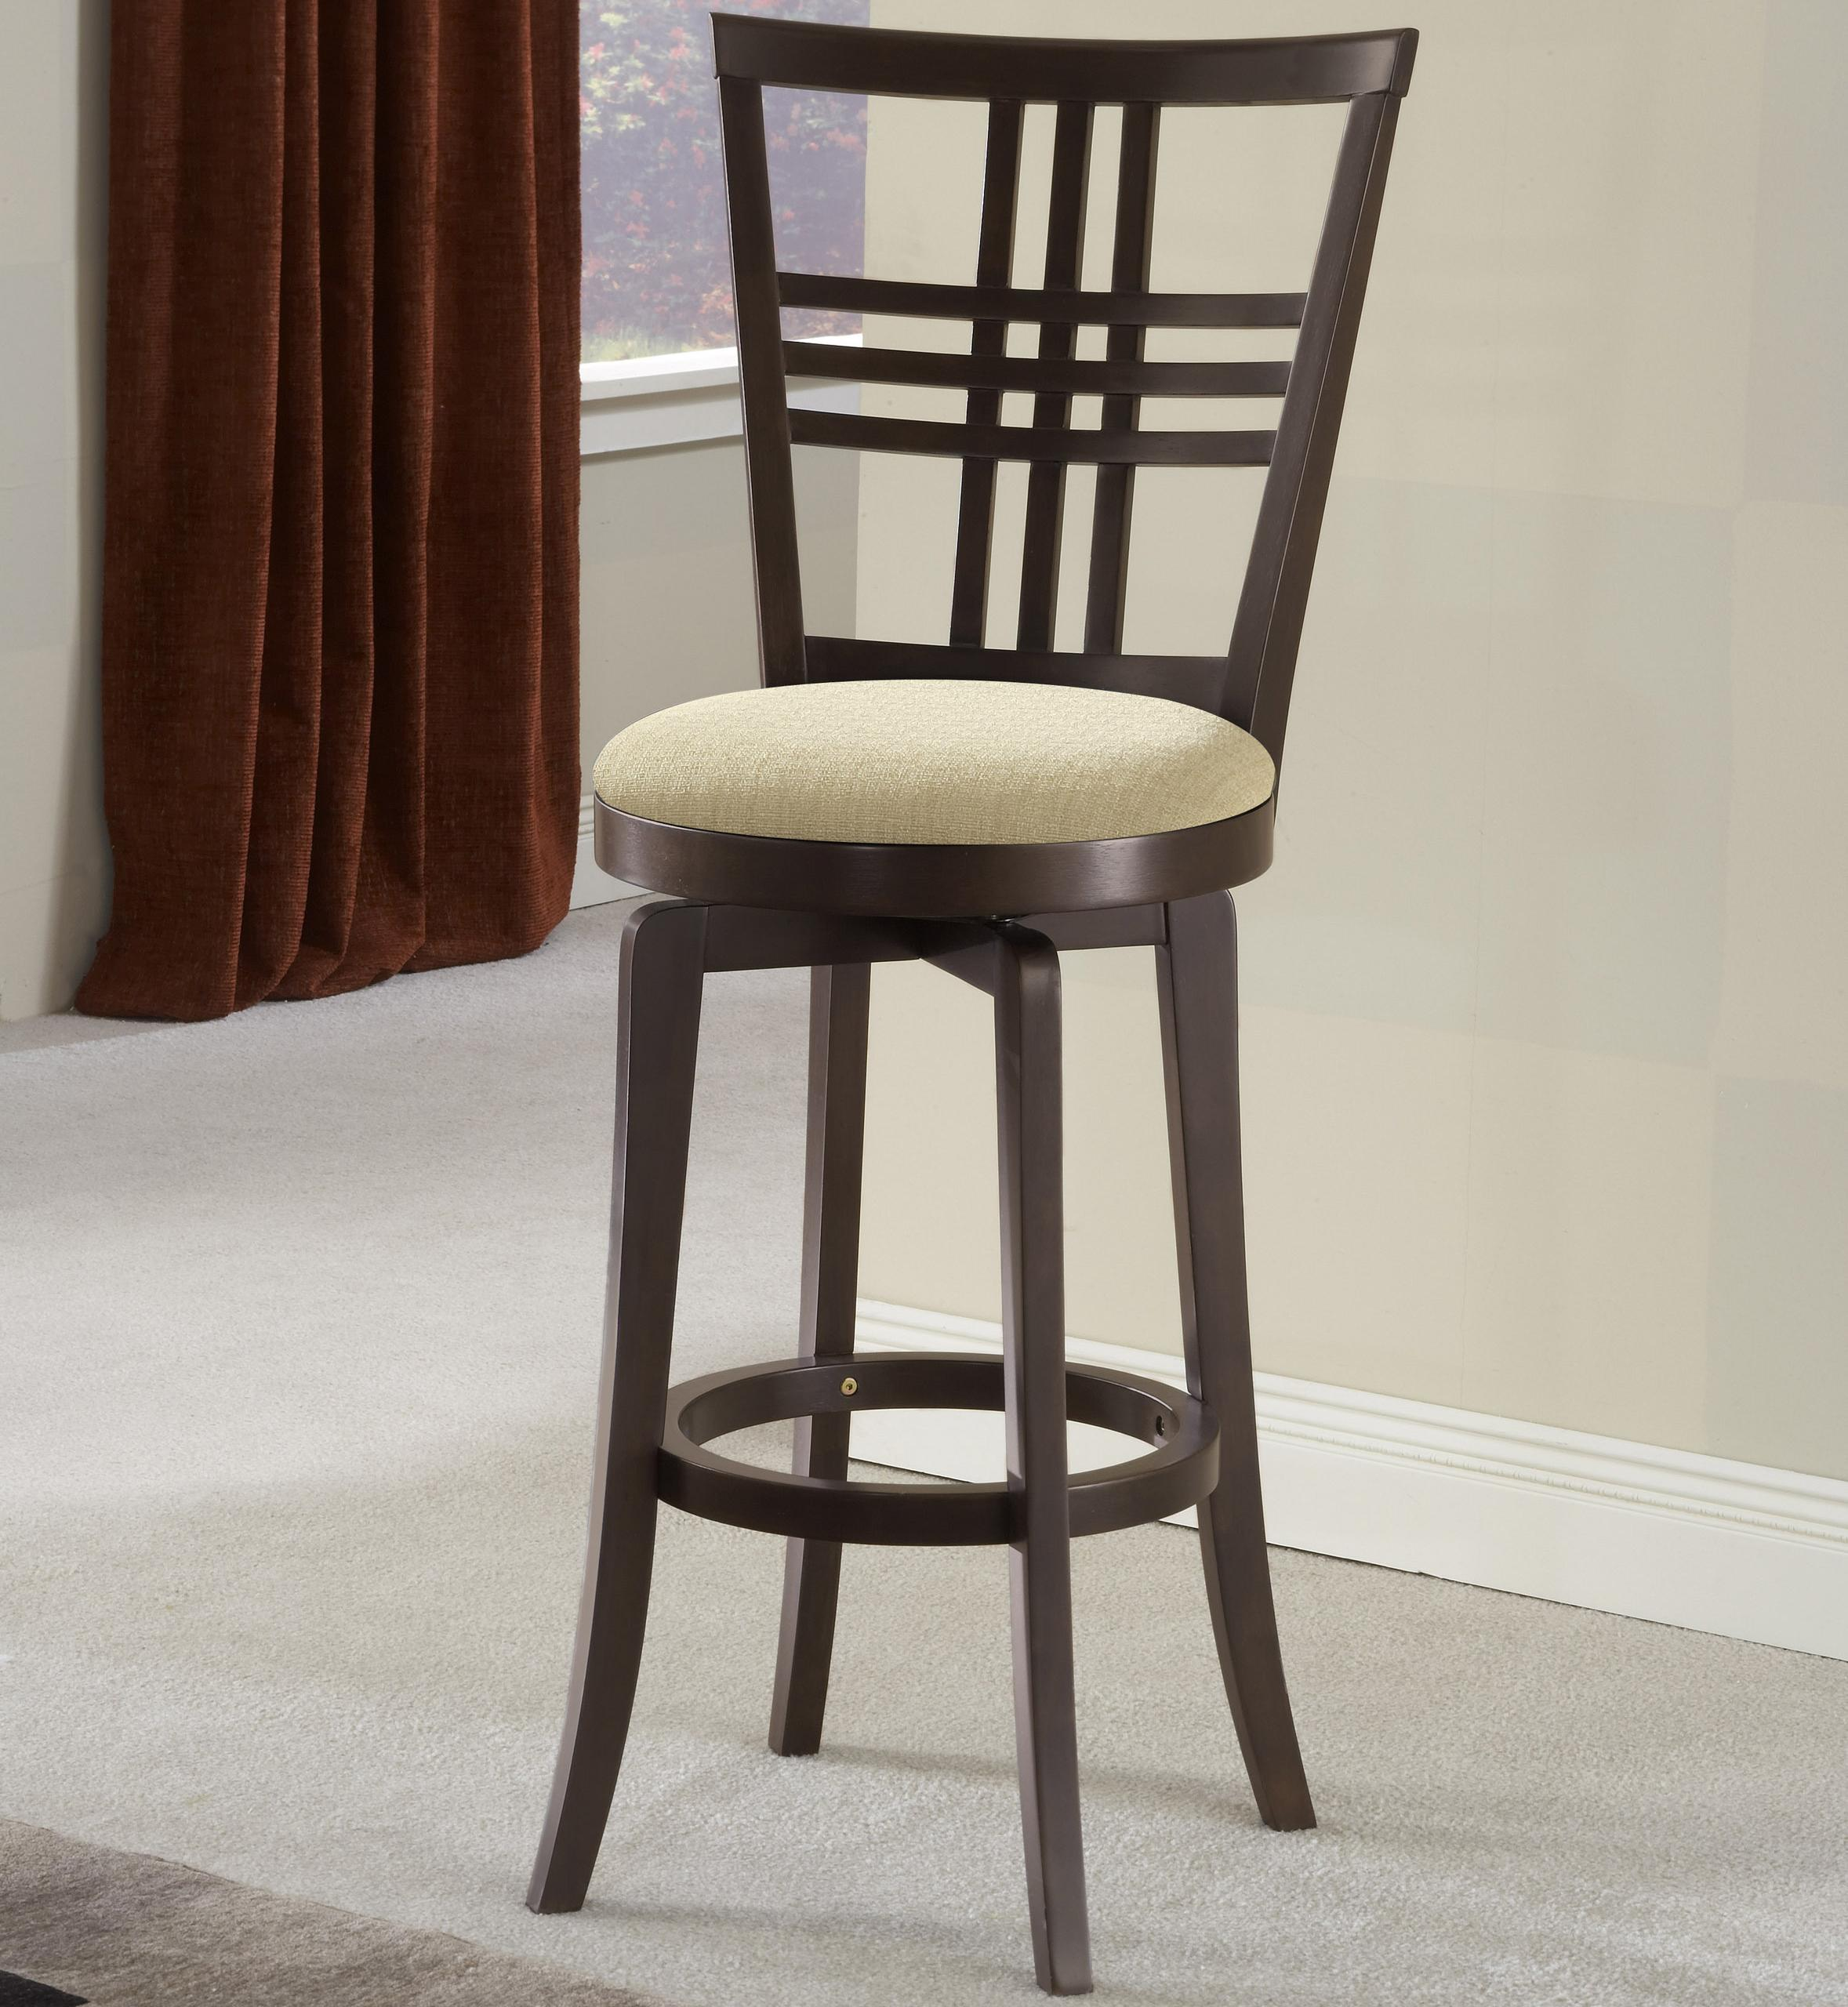 Hillsdale Wood Stools 30 Bar Height Tiburon Stool Lindys